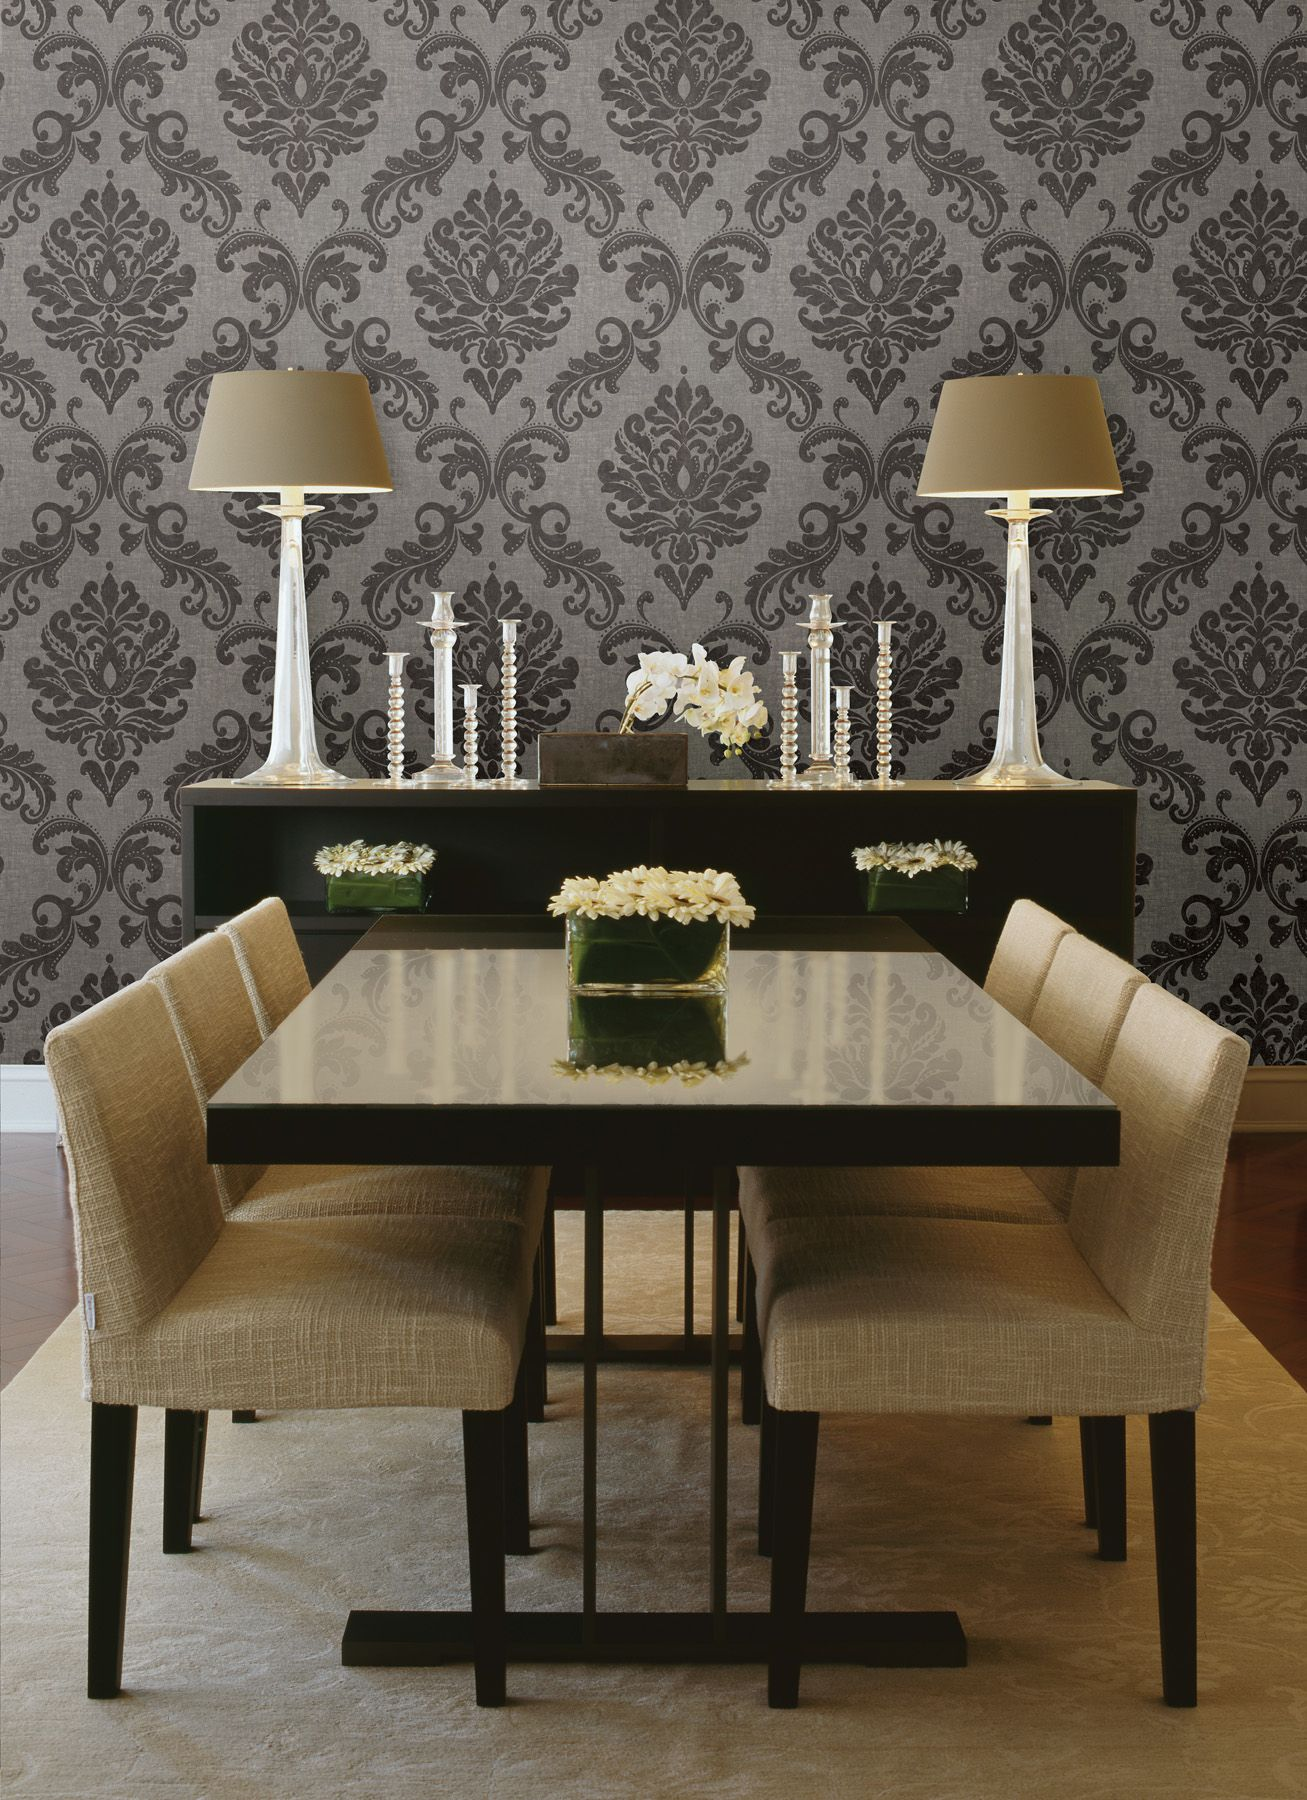 modern wallpaper designs for dining room on pin by alyssa pettinato on living room designs formal dining room decor dining room wallpaper dining room walls pinterest